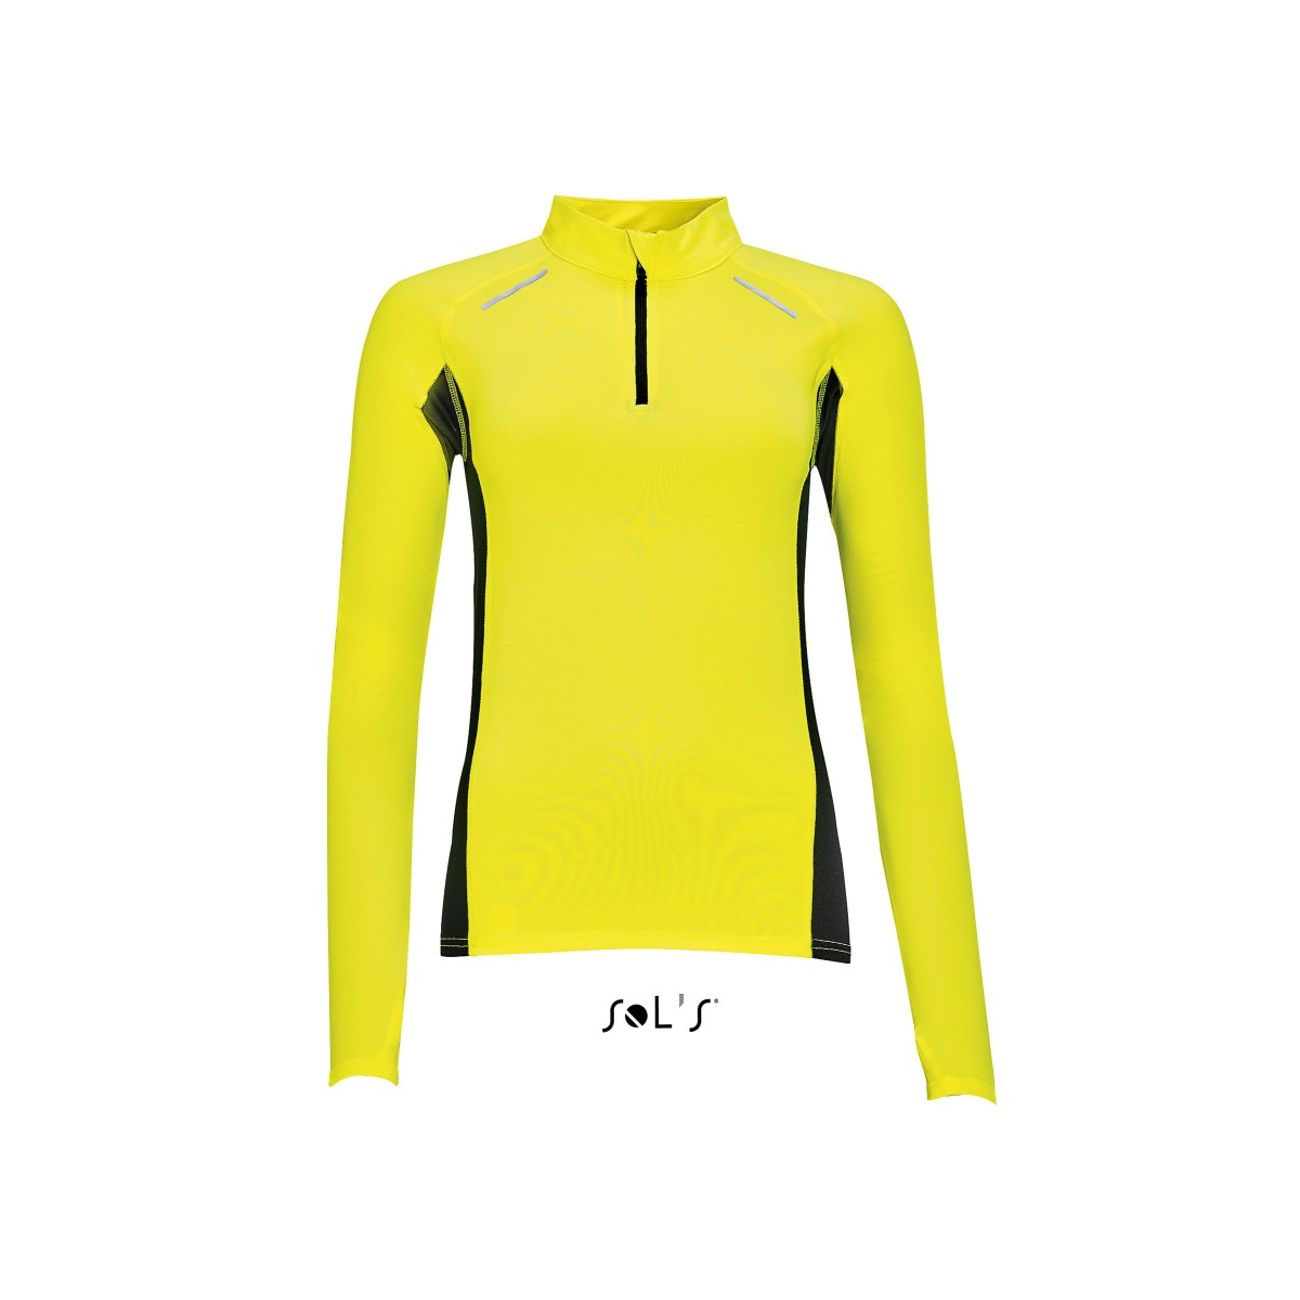 new york new photos offer discounts Course à pied femme SOL S t-shirt running manches longues - Femme - 01417 -  jaune fluo